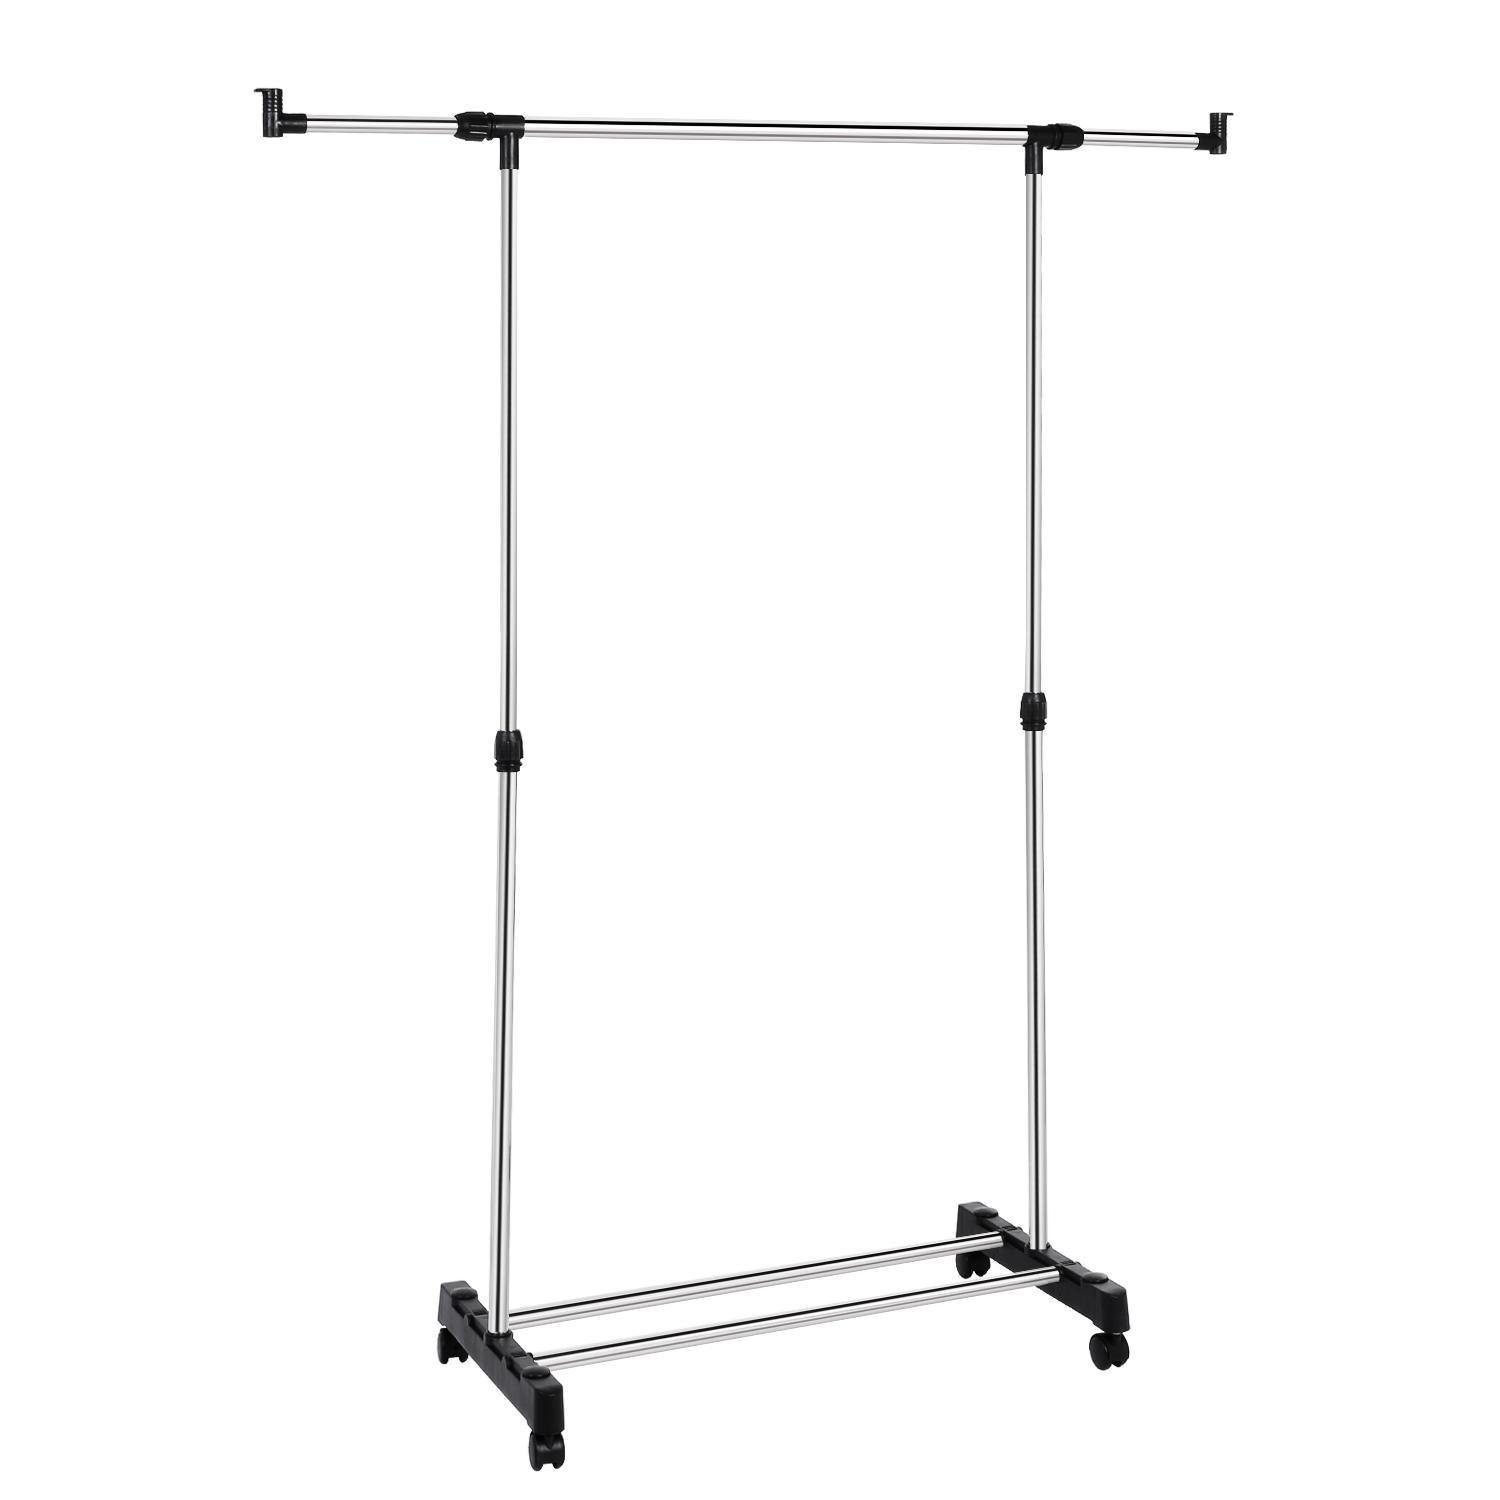 evokem Portable Rolling Clothes Garment Rack with Wheels Height Adjustable Hanging Clothes Rack Organizer